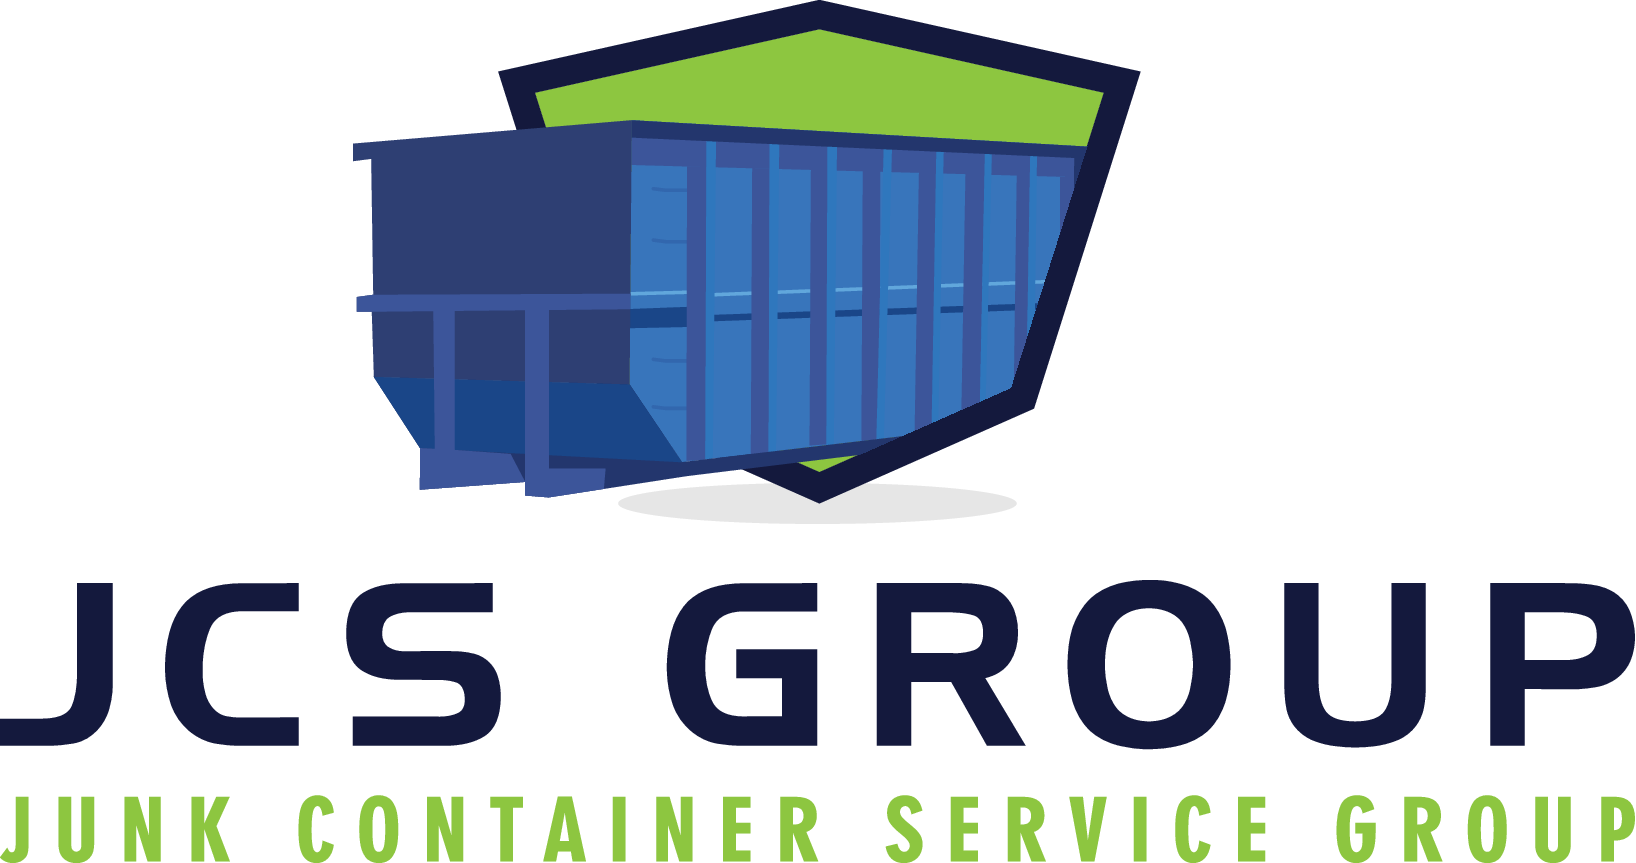 Junk Container Service Group